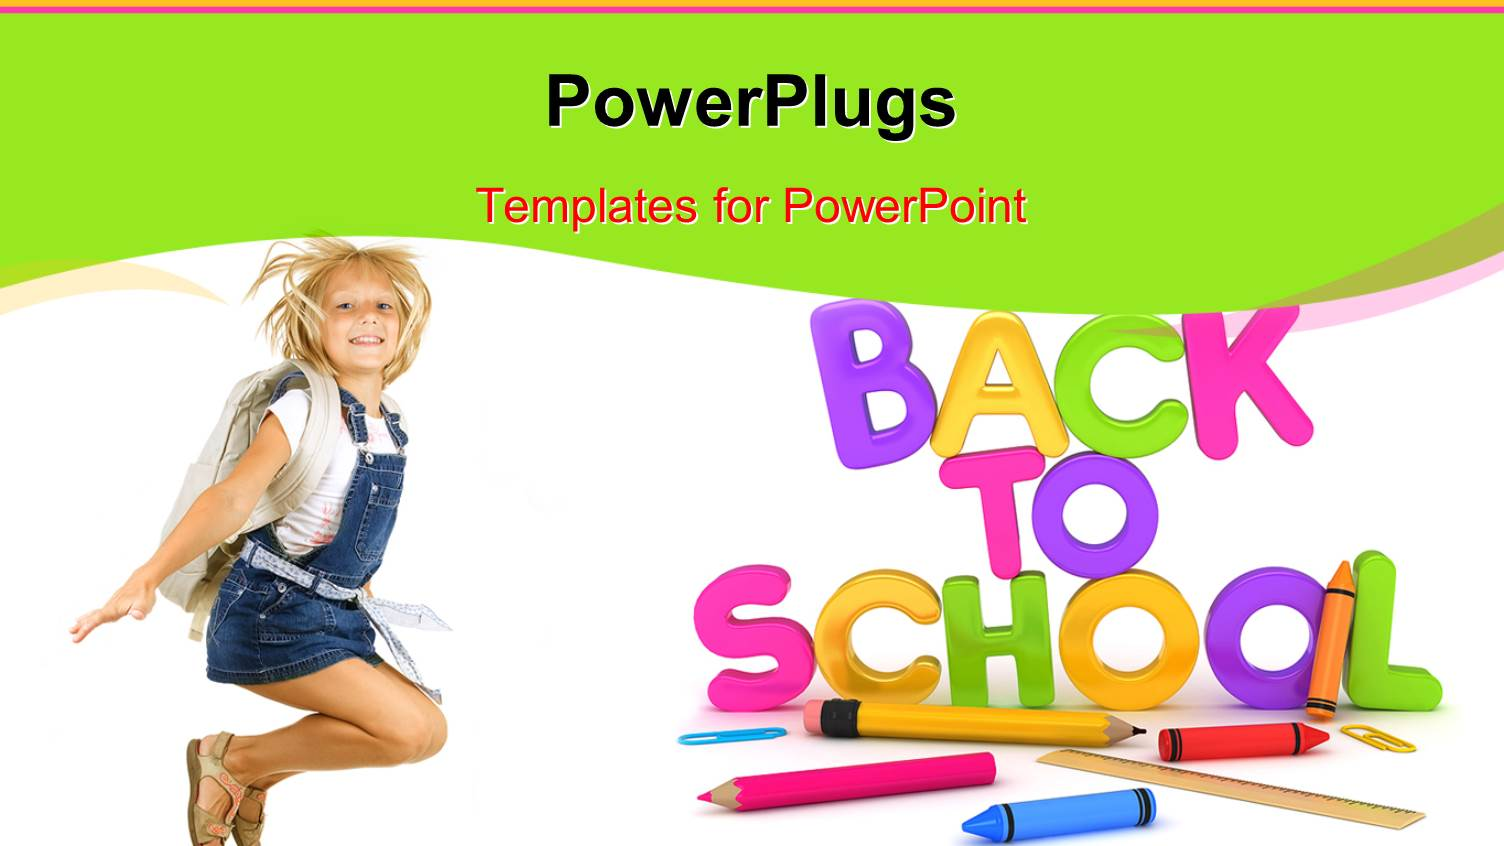 Powerpoint template colorful letters form text back to school template featuring learning depiction with school supplies and cute girl dressed for school toneelgroepblik Images